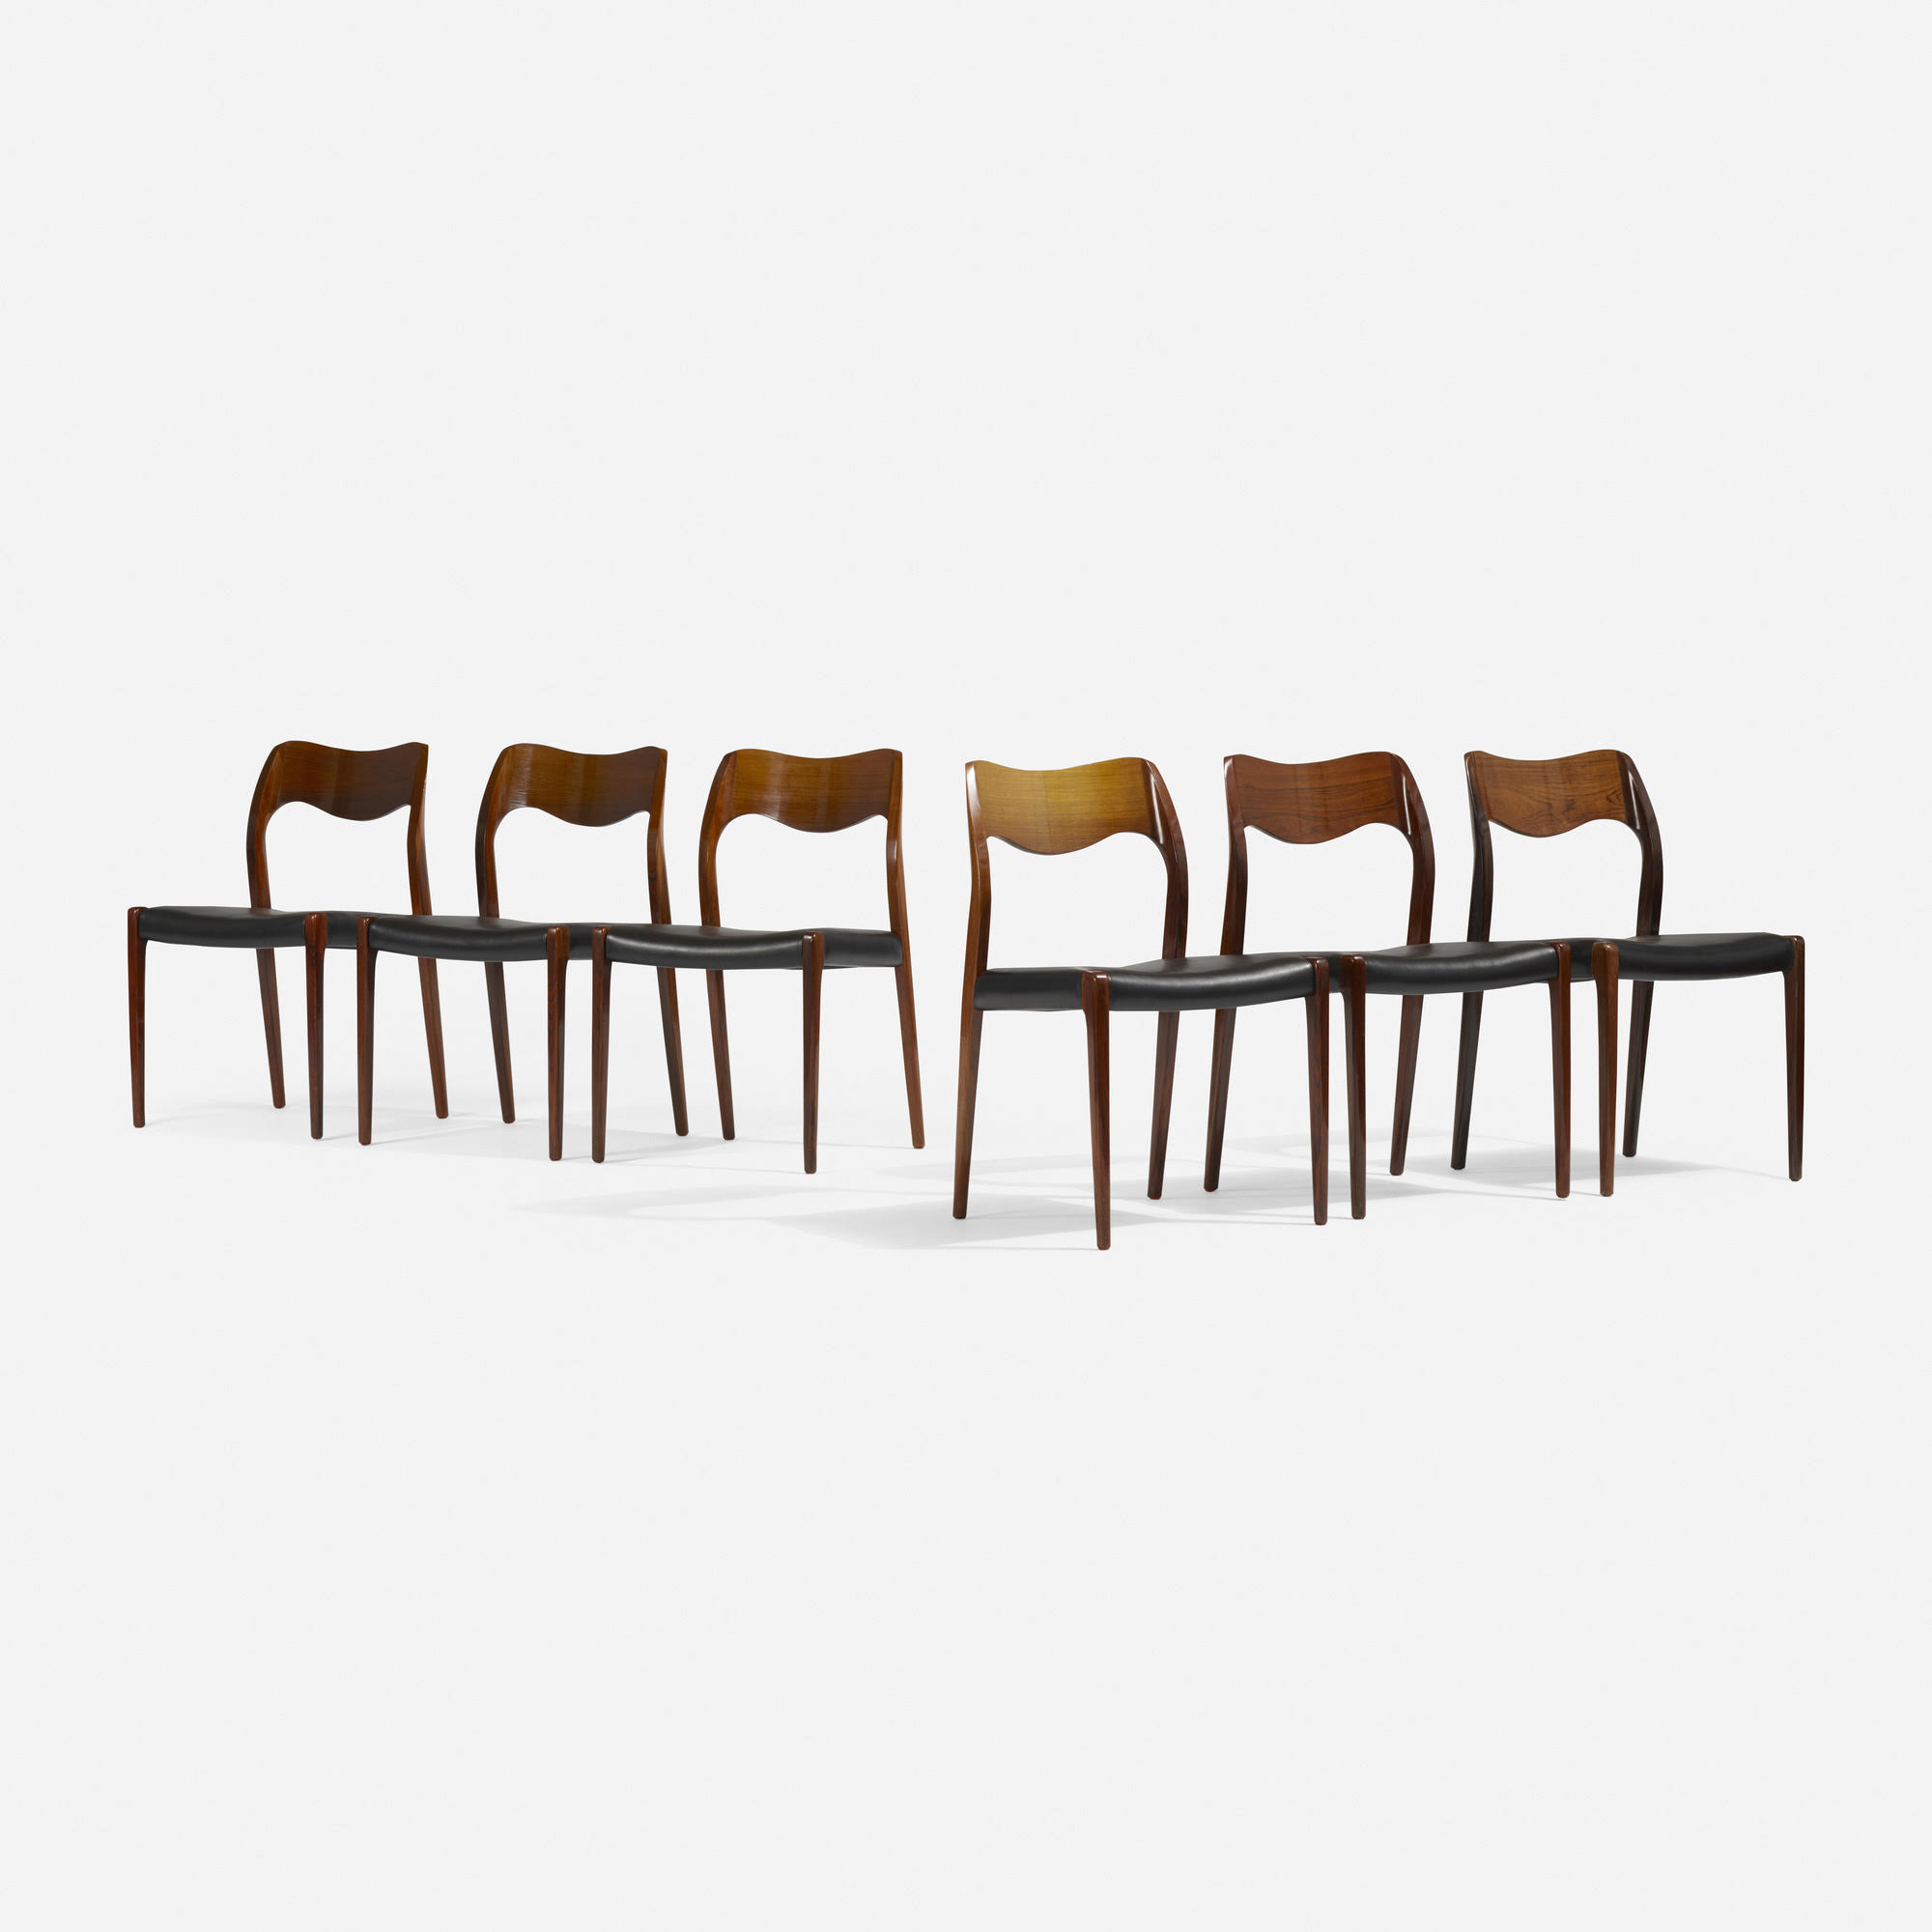 Meller Dining Chairs   Price Upon Request. Email mylaoutpost@gmail.com  J.L. Møllers Møbelfabrik Denmark, 1951 rosewood, leather 19½ w × 20 d × 31½ h in 50 × 51 × 80 cm